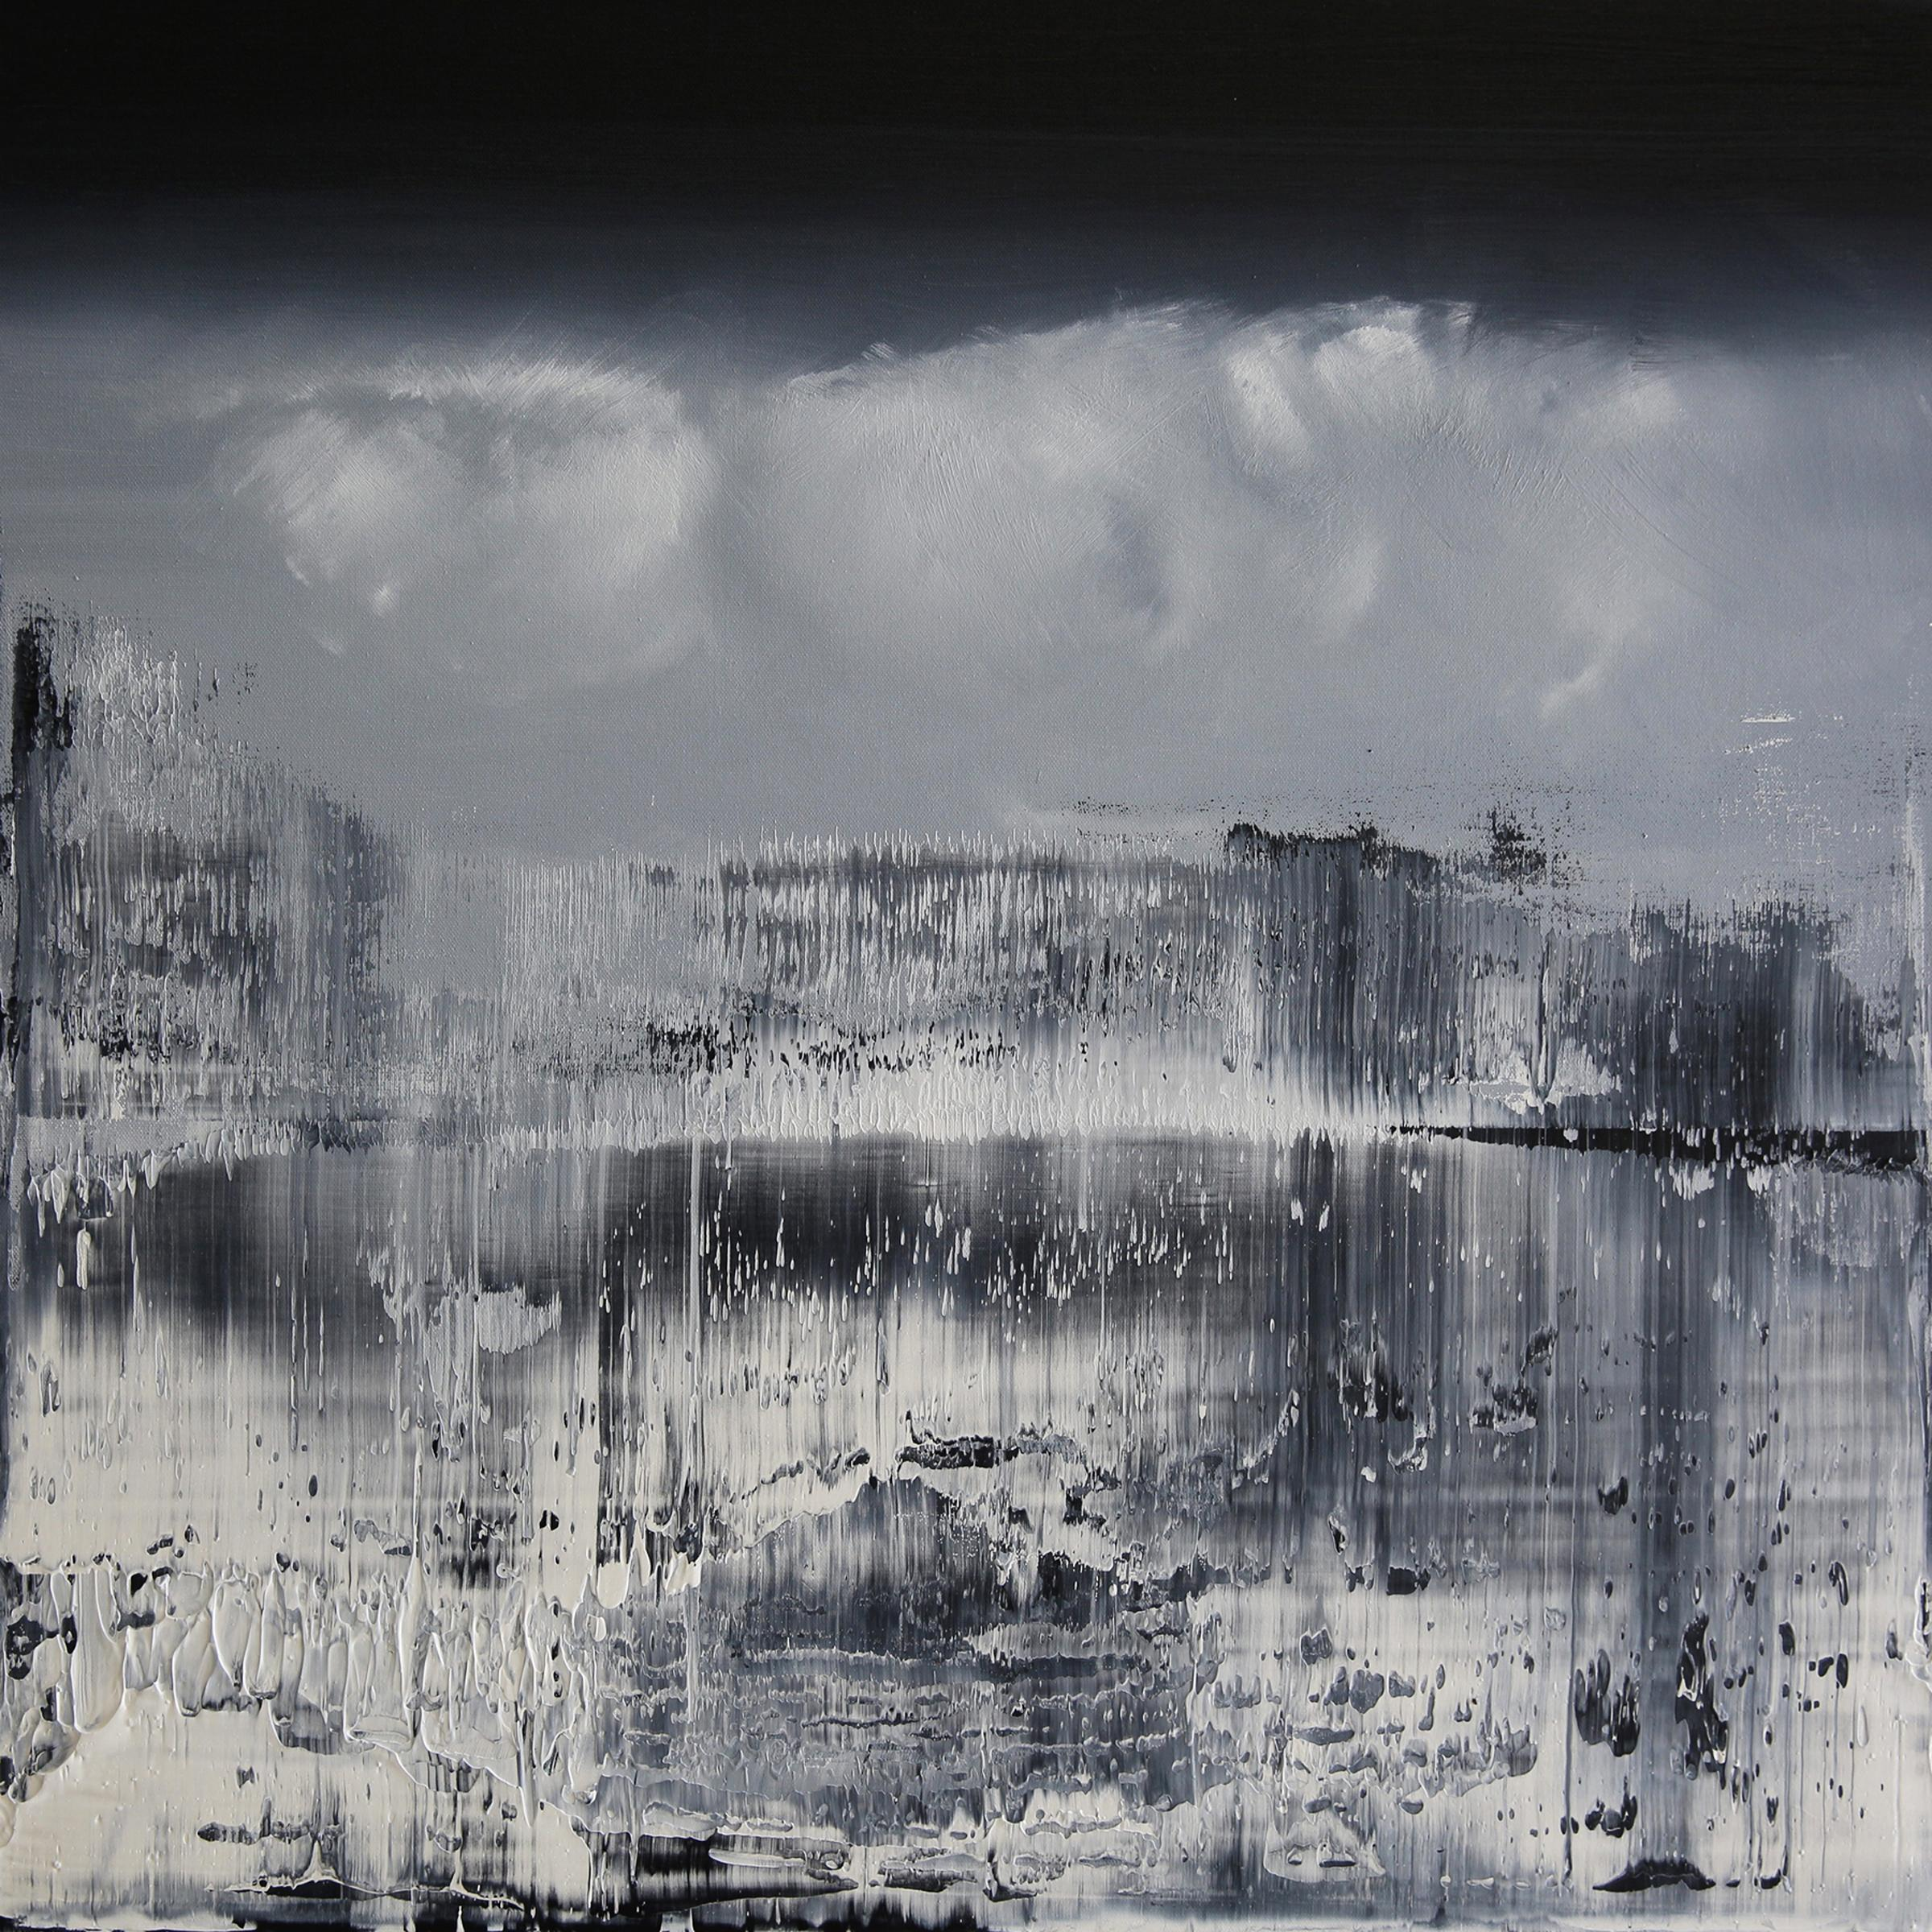 German Contemporary Art by Harry Moody - Clouds n°305